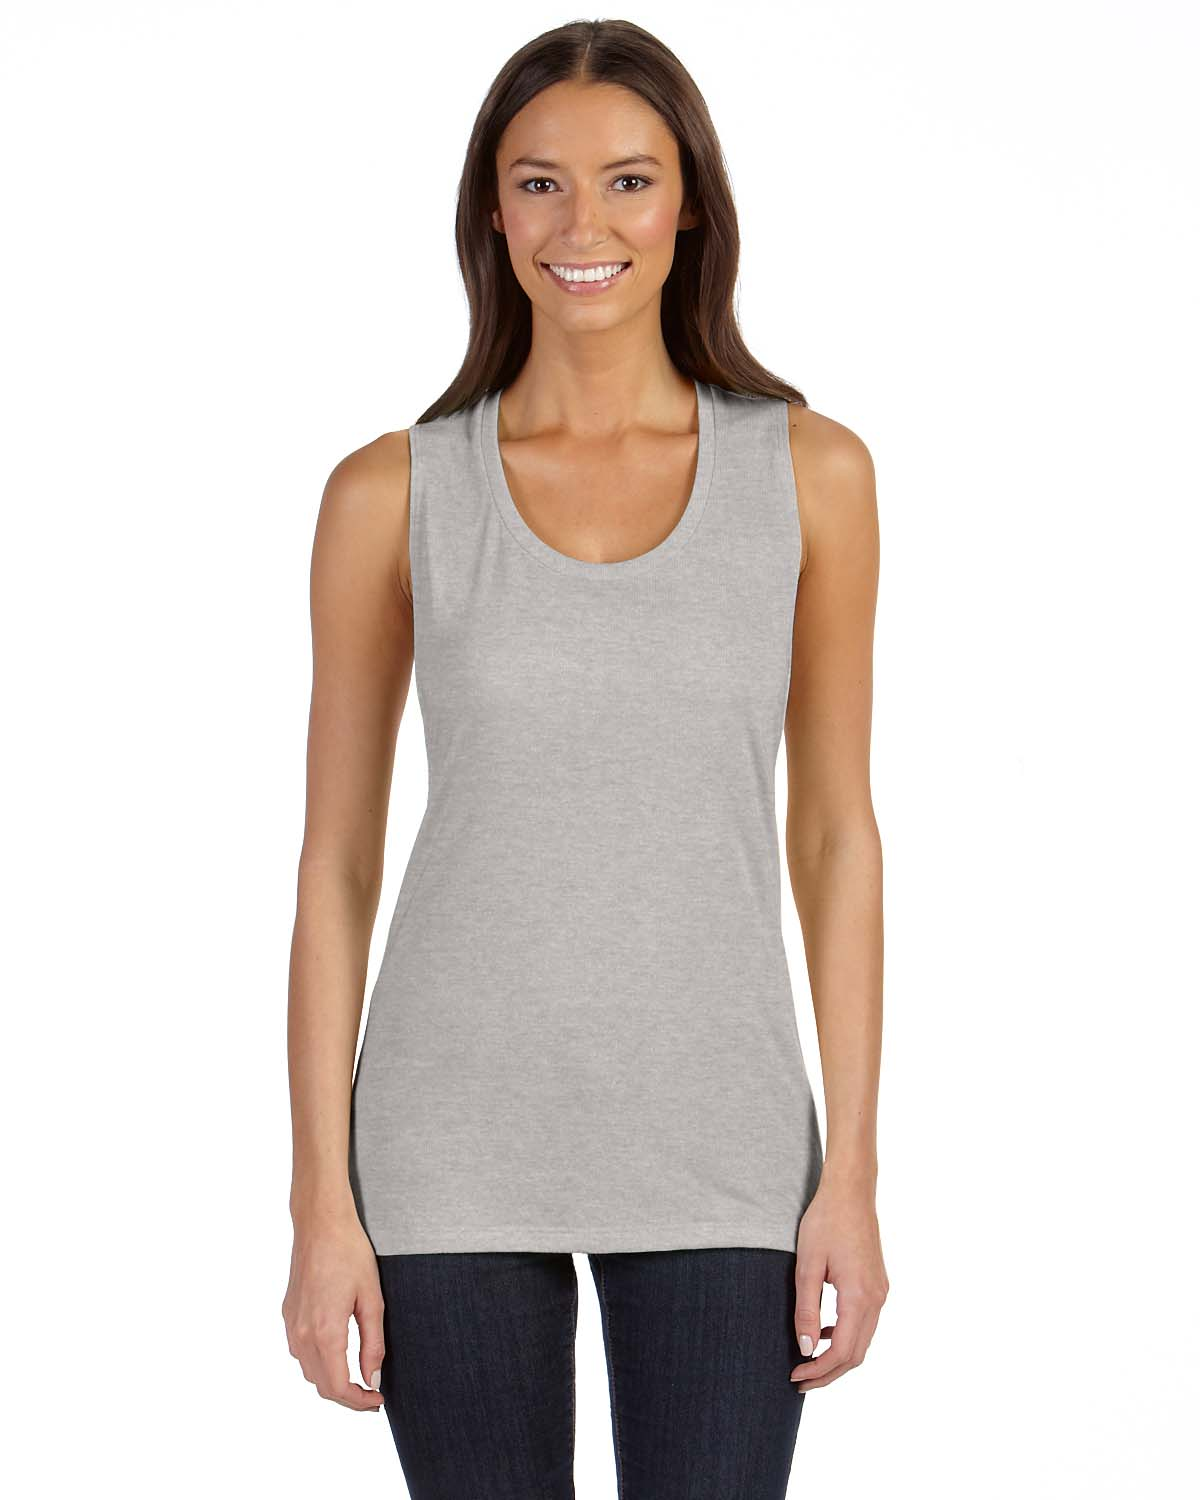 Tank Tops Women. There is no end to where tank tops can go; women can assemble looks for the office or the gym around the right styling of tank. Simple, cotton, sleeveless tees are ideal for workouts. Run outside in the hot summer sun, or lunge onto a yoga mat in the heated studio, keeping cool in a tank or camisole. Mimic.